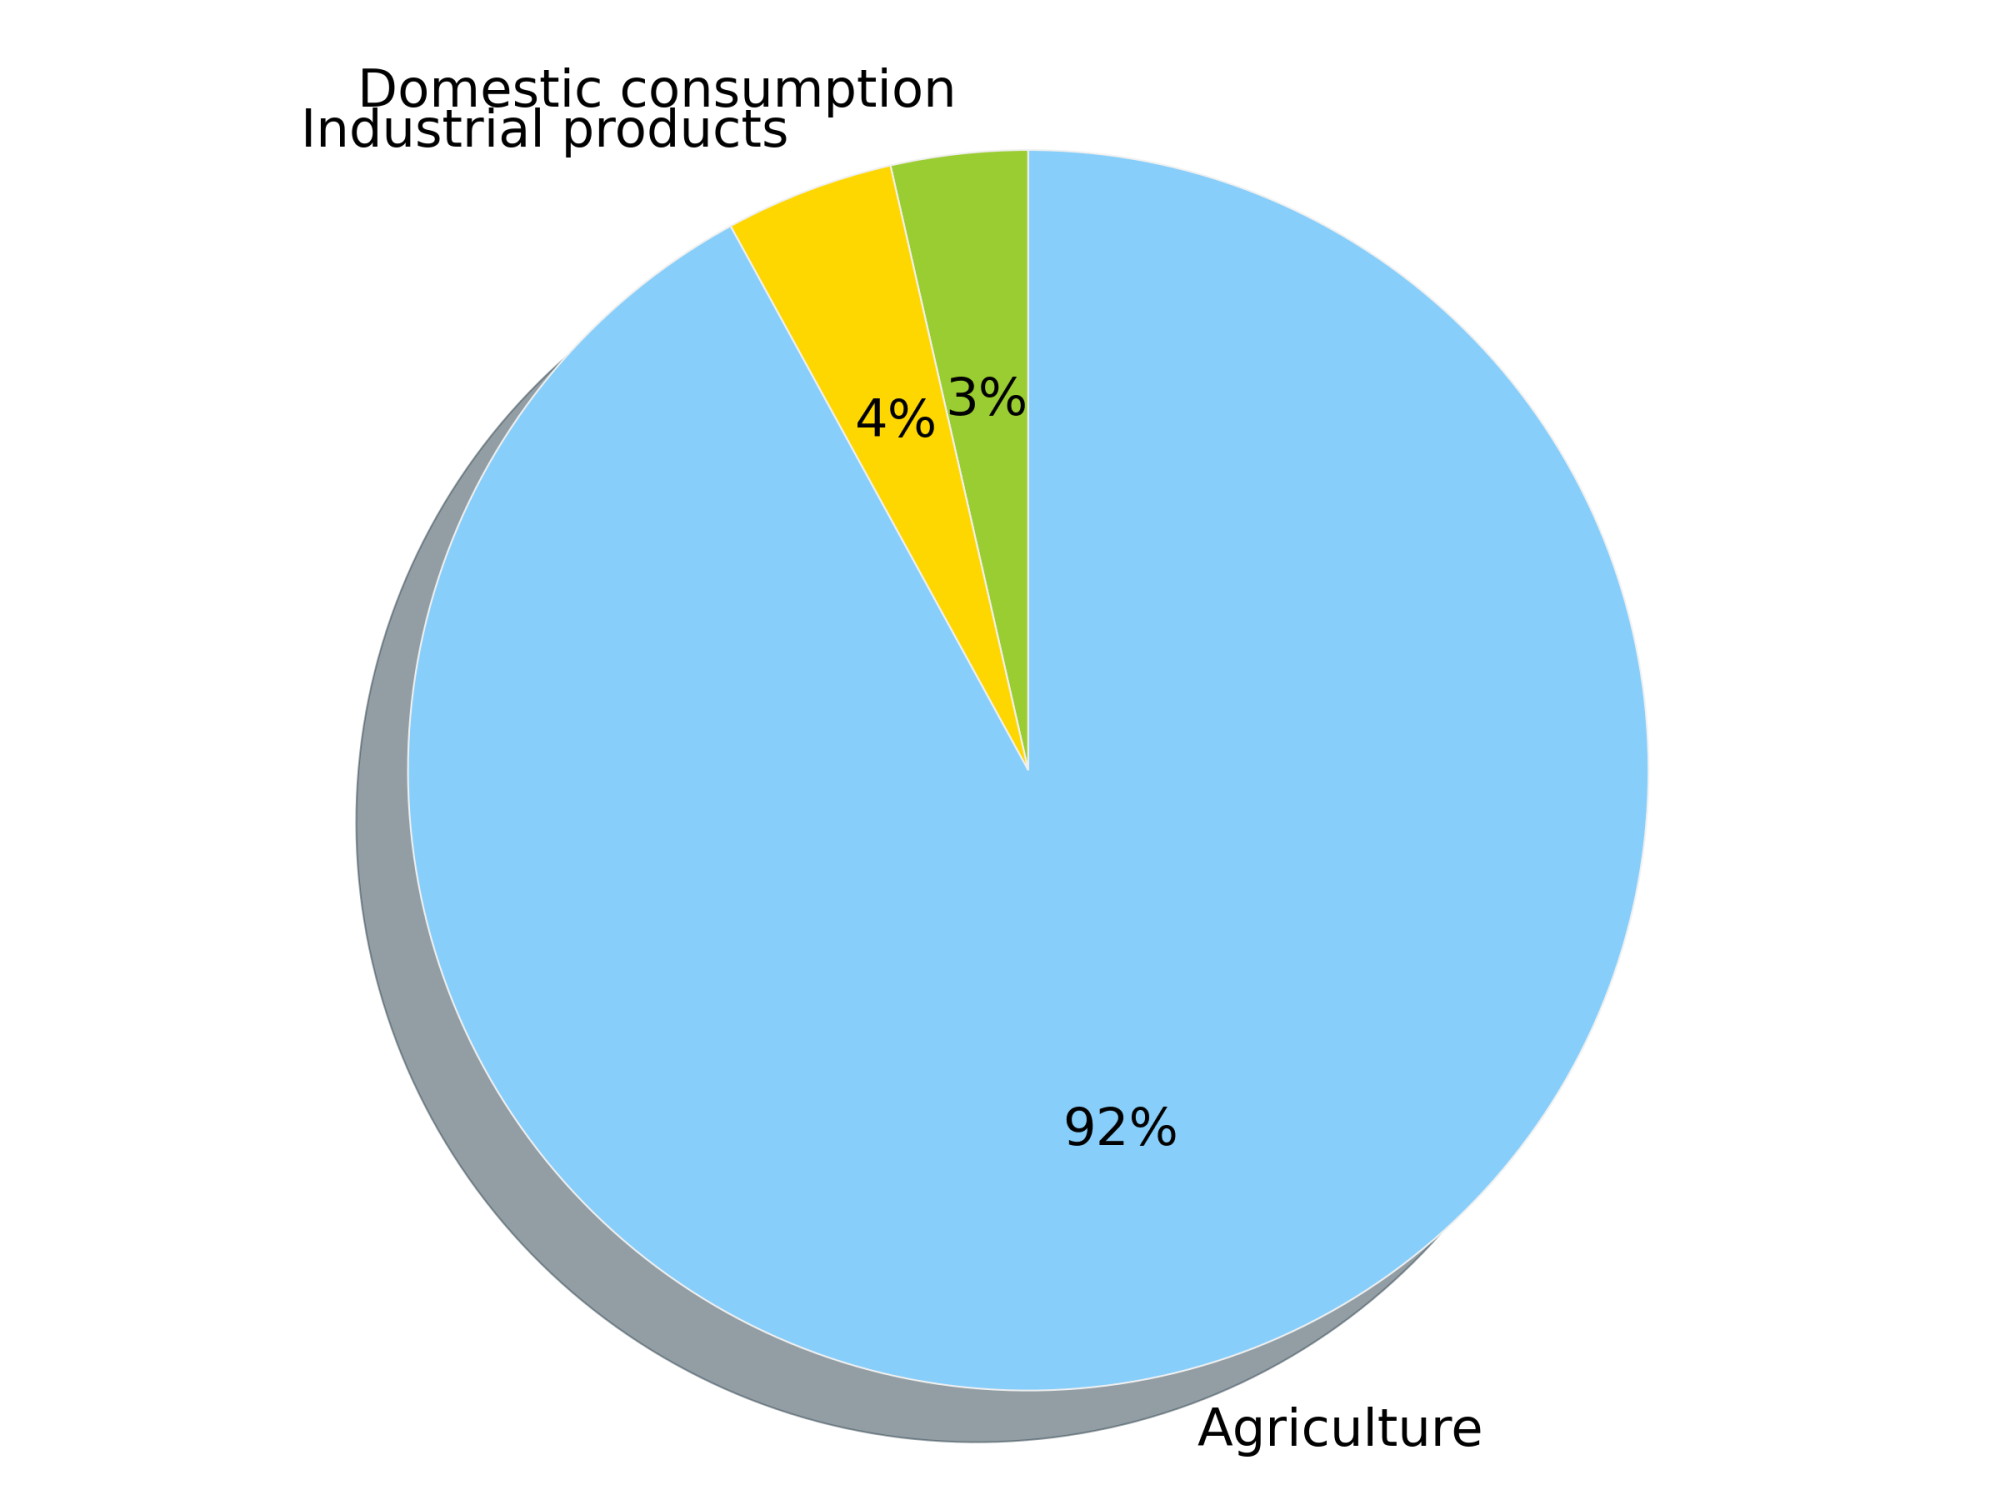 hight resolution of this pie chart shows the percentage of the global water footprint attributed to industrial products 4 domestic consumption 3 and agriculture 92